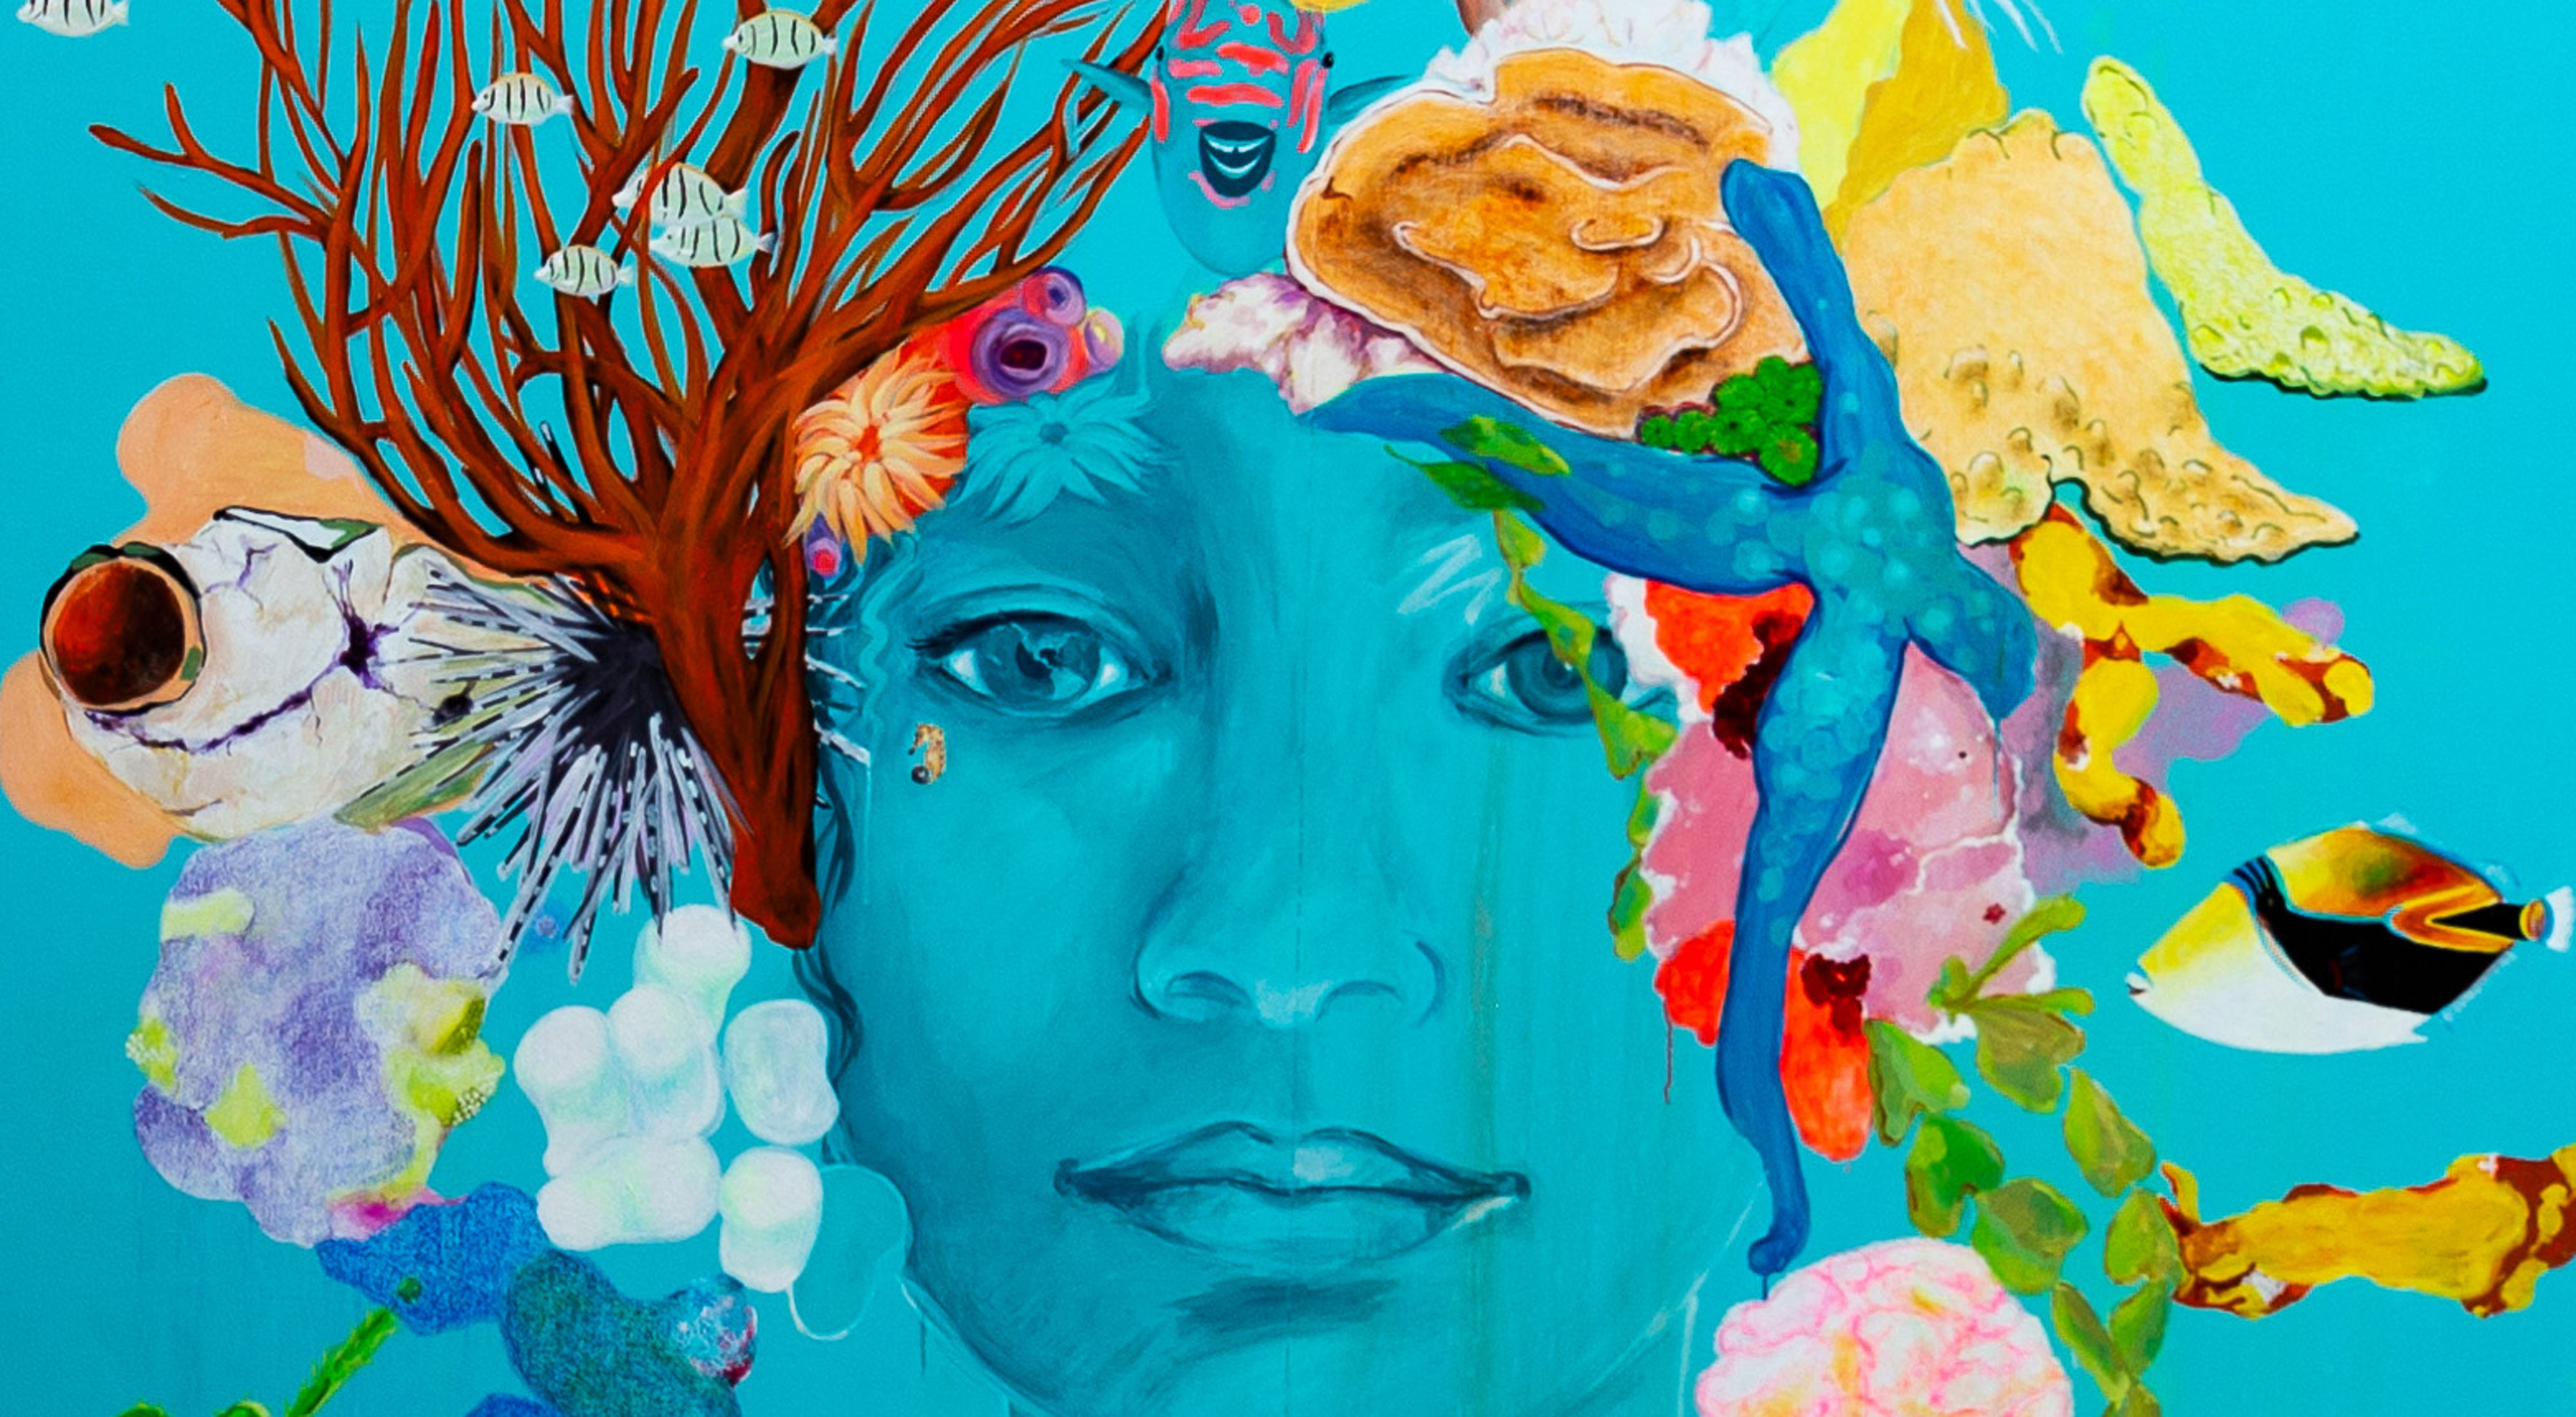 A bright turquoise mural of a woman's face with sea creatures as hair.